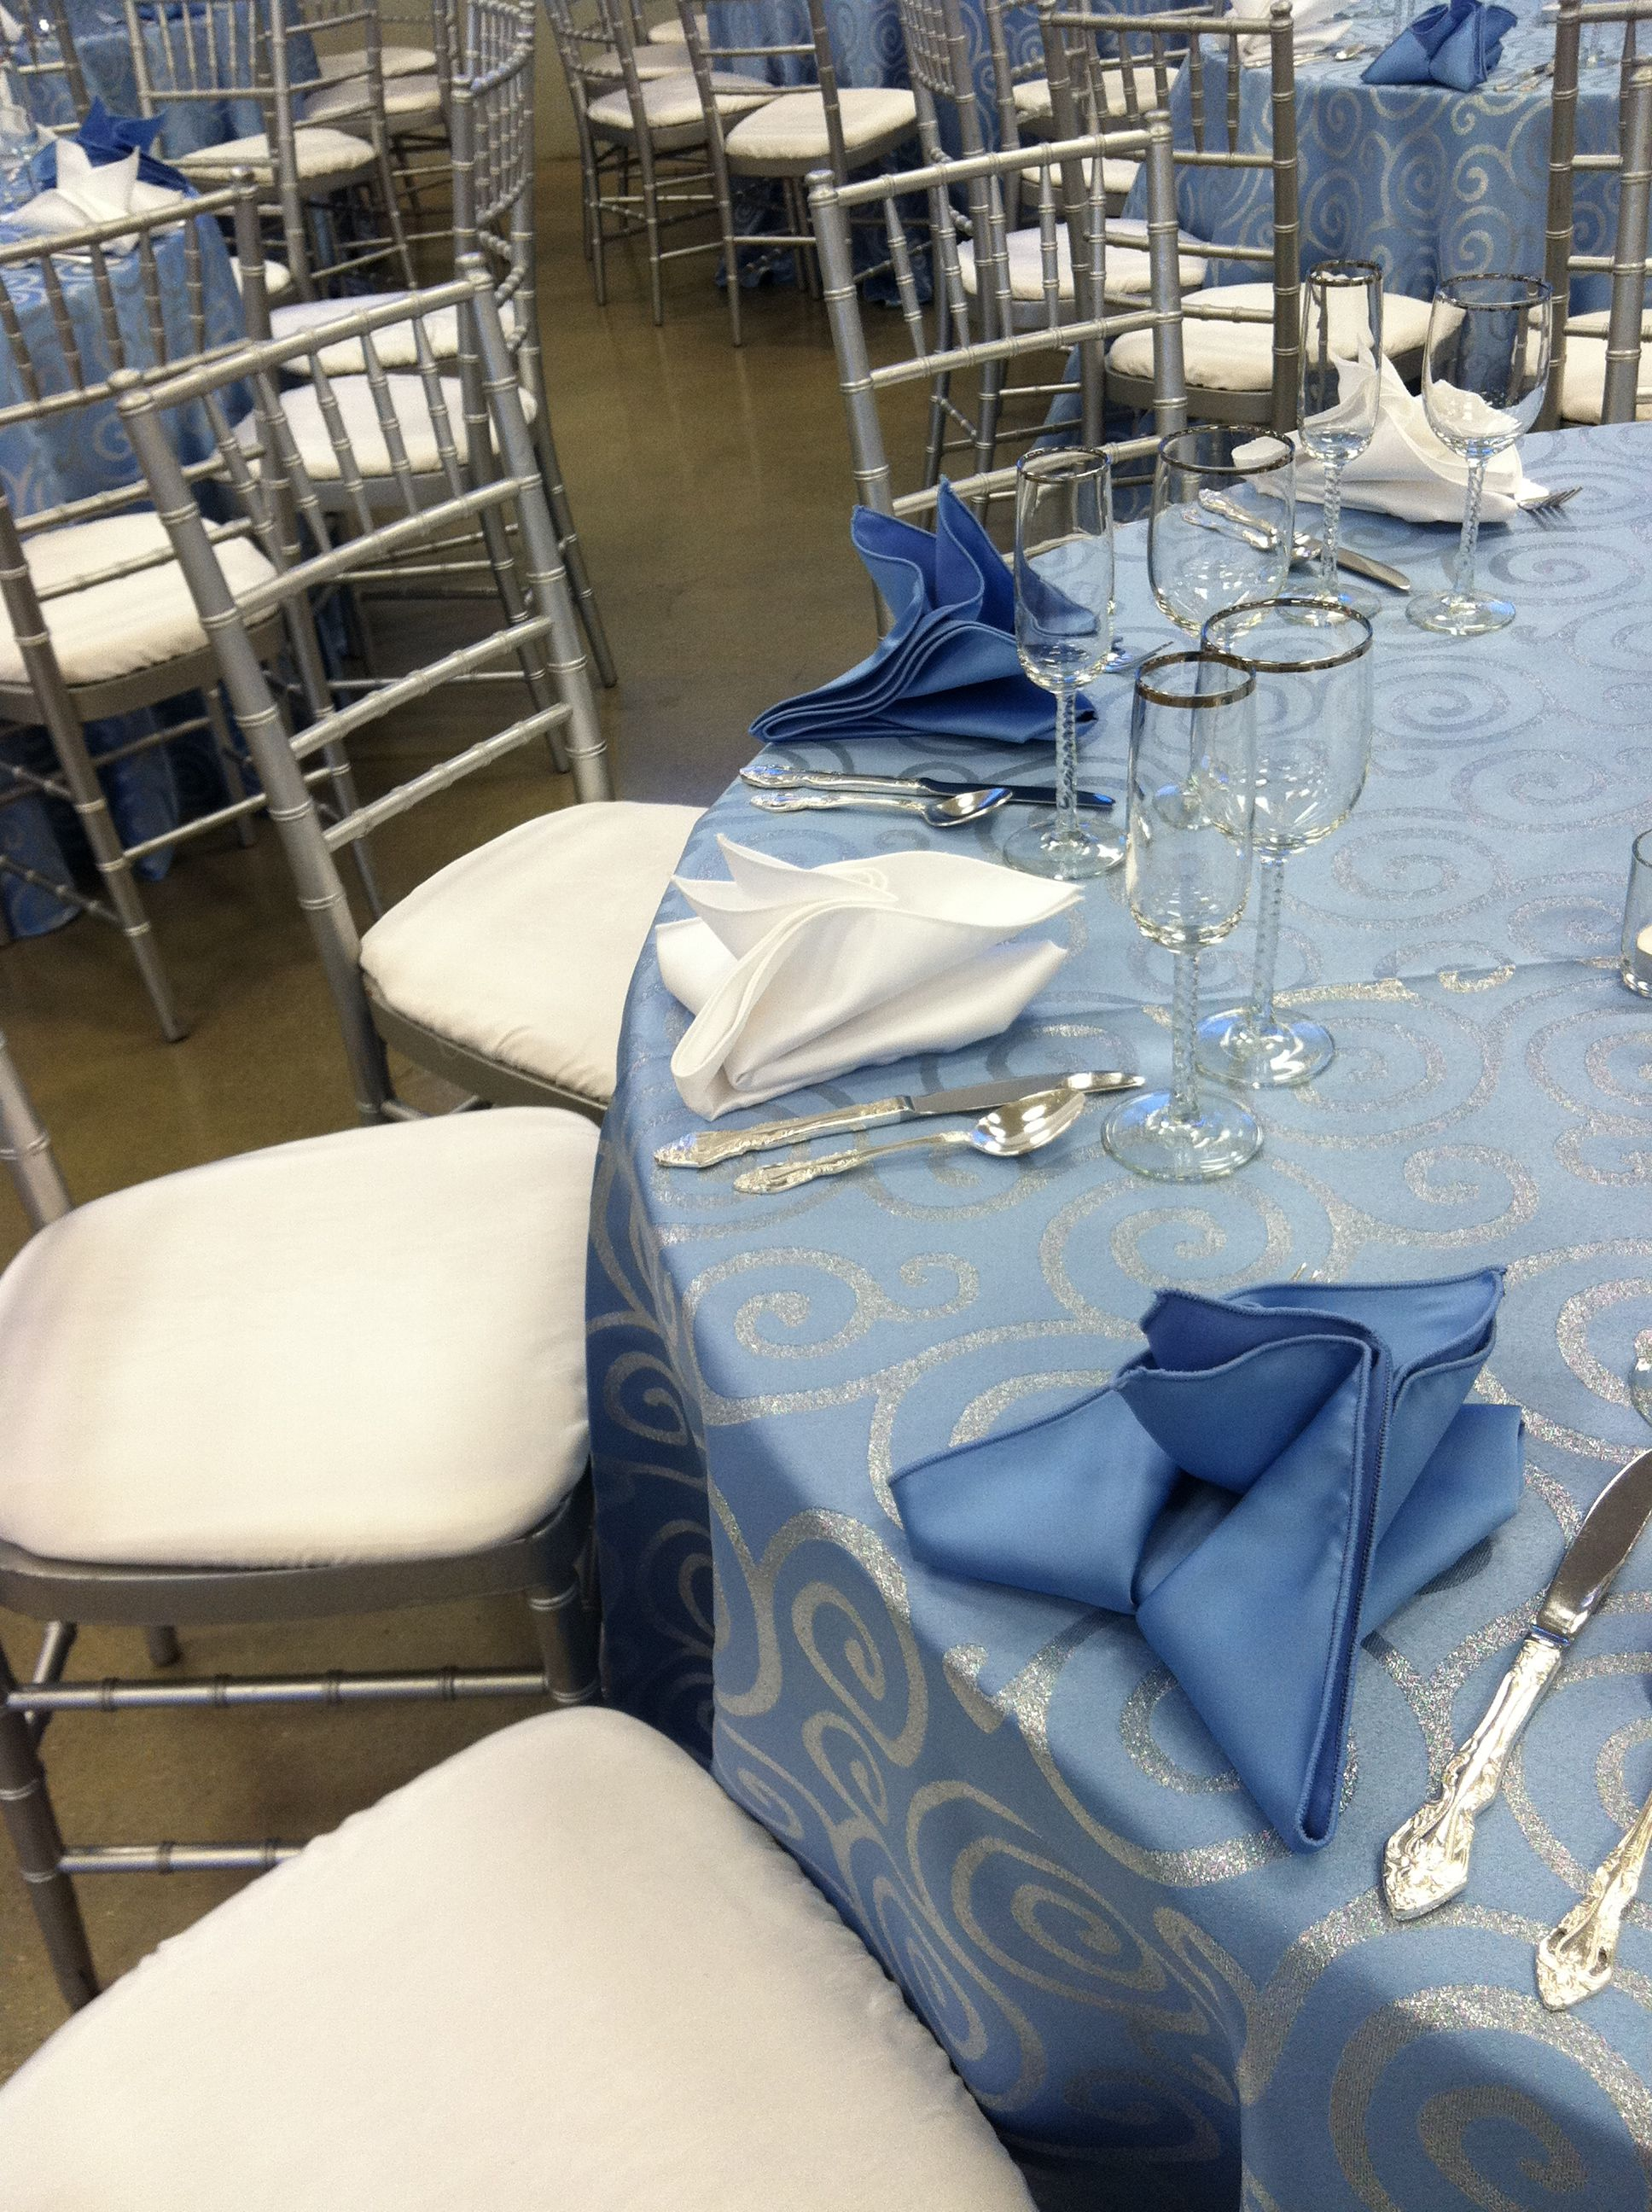 Light Blue Metallic School linen, Silver Chiavari Chairs